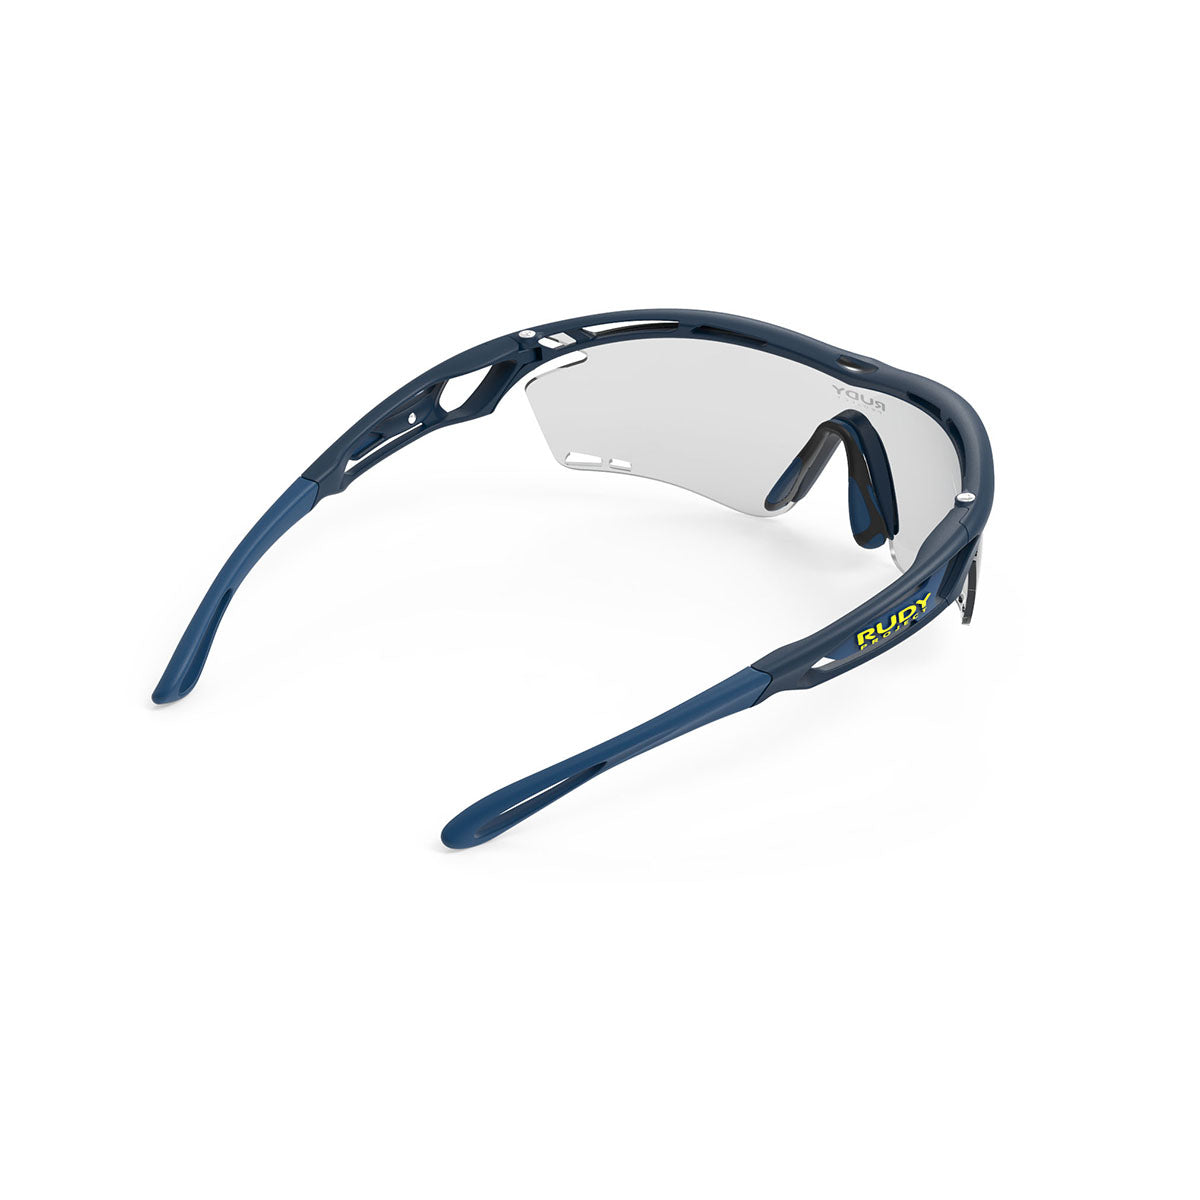 Rudy Project - Tralyx - frame color: Blue Navy Matte - lens color: ImpactX-2 Photochromic Clear to Black - photo angle: Top Back Angle Variant Hover Image